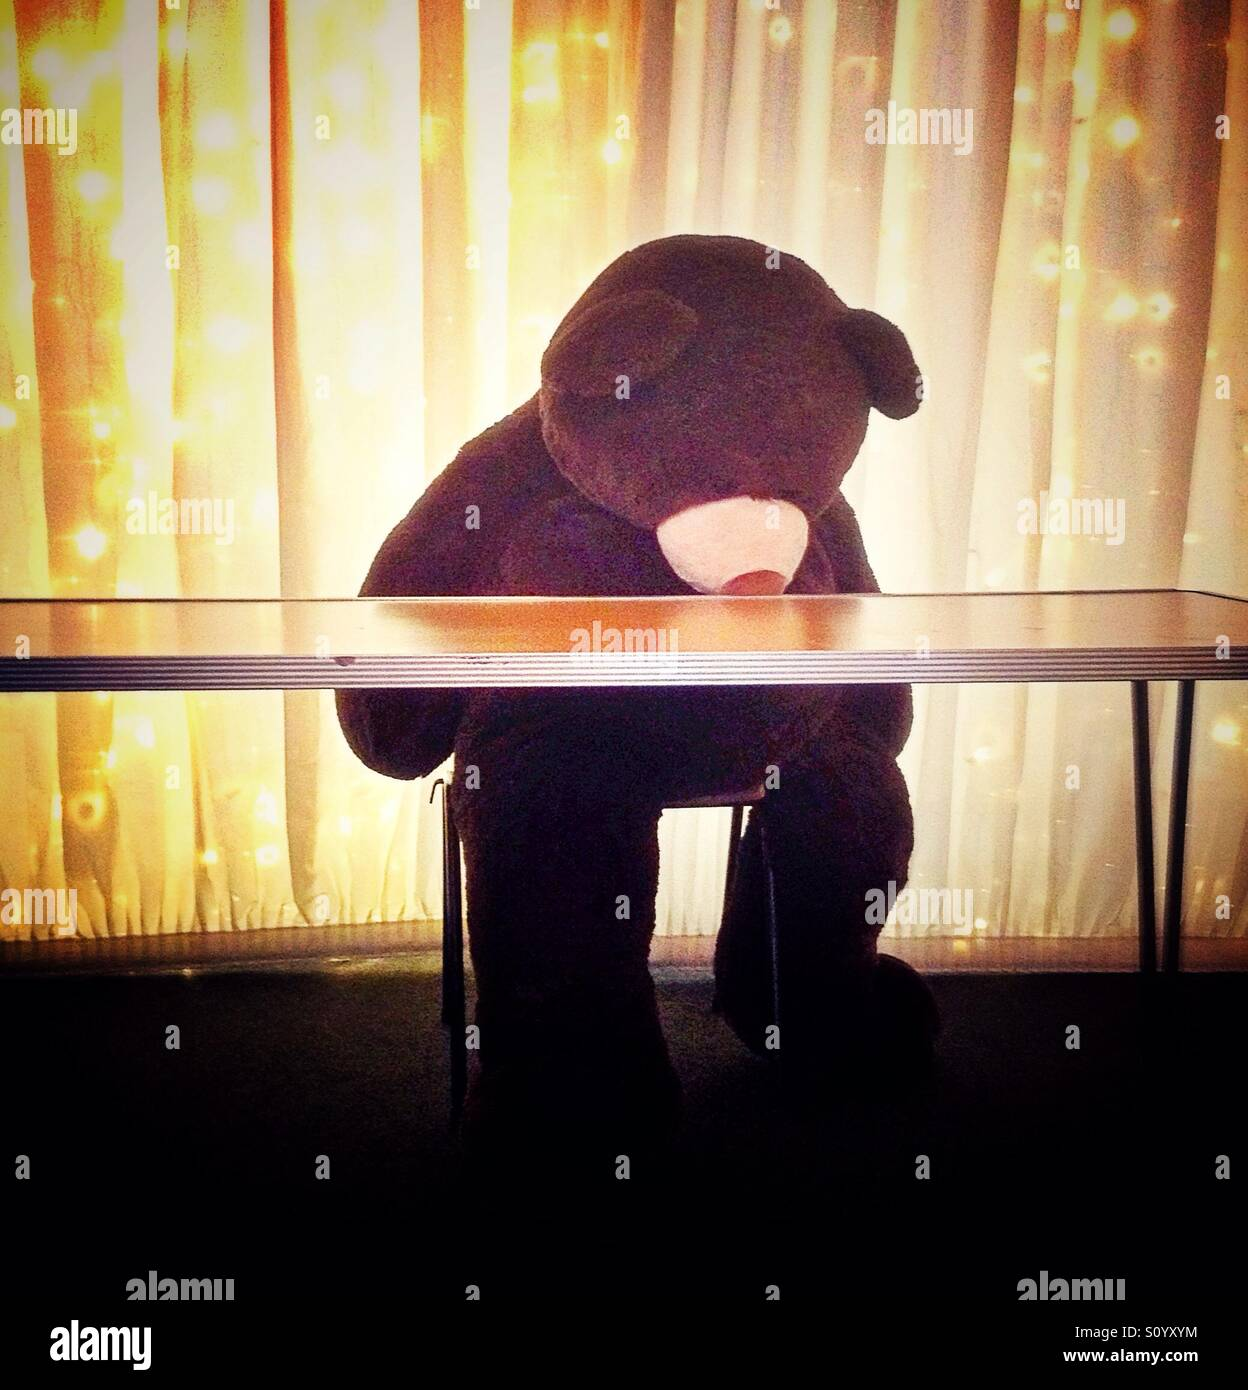 Giant teddy bear sitting at table looking lonely and sad - Stock Image